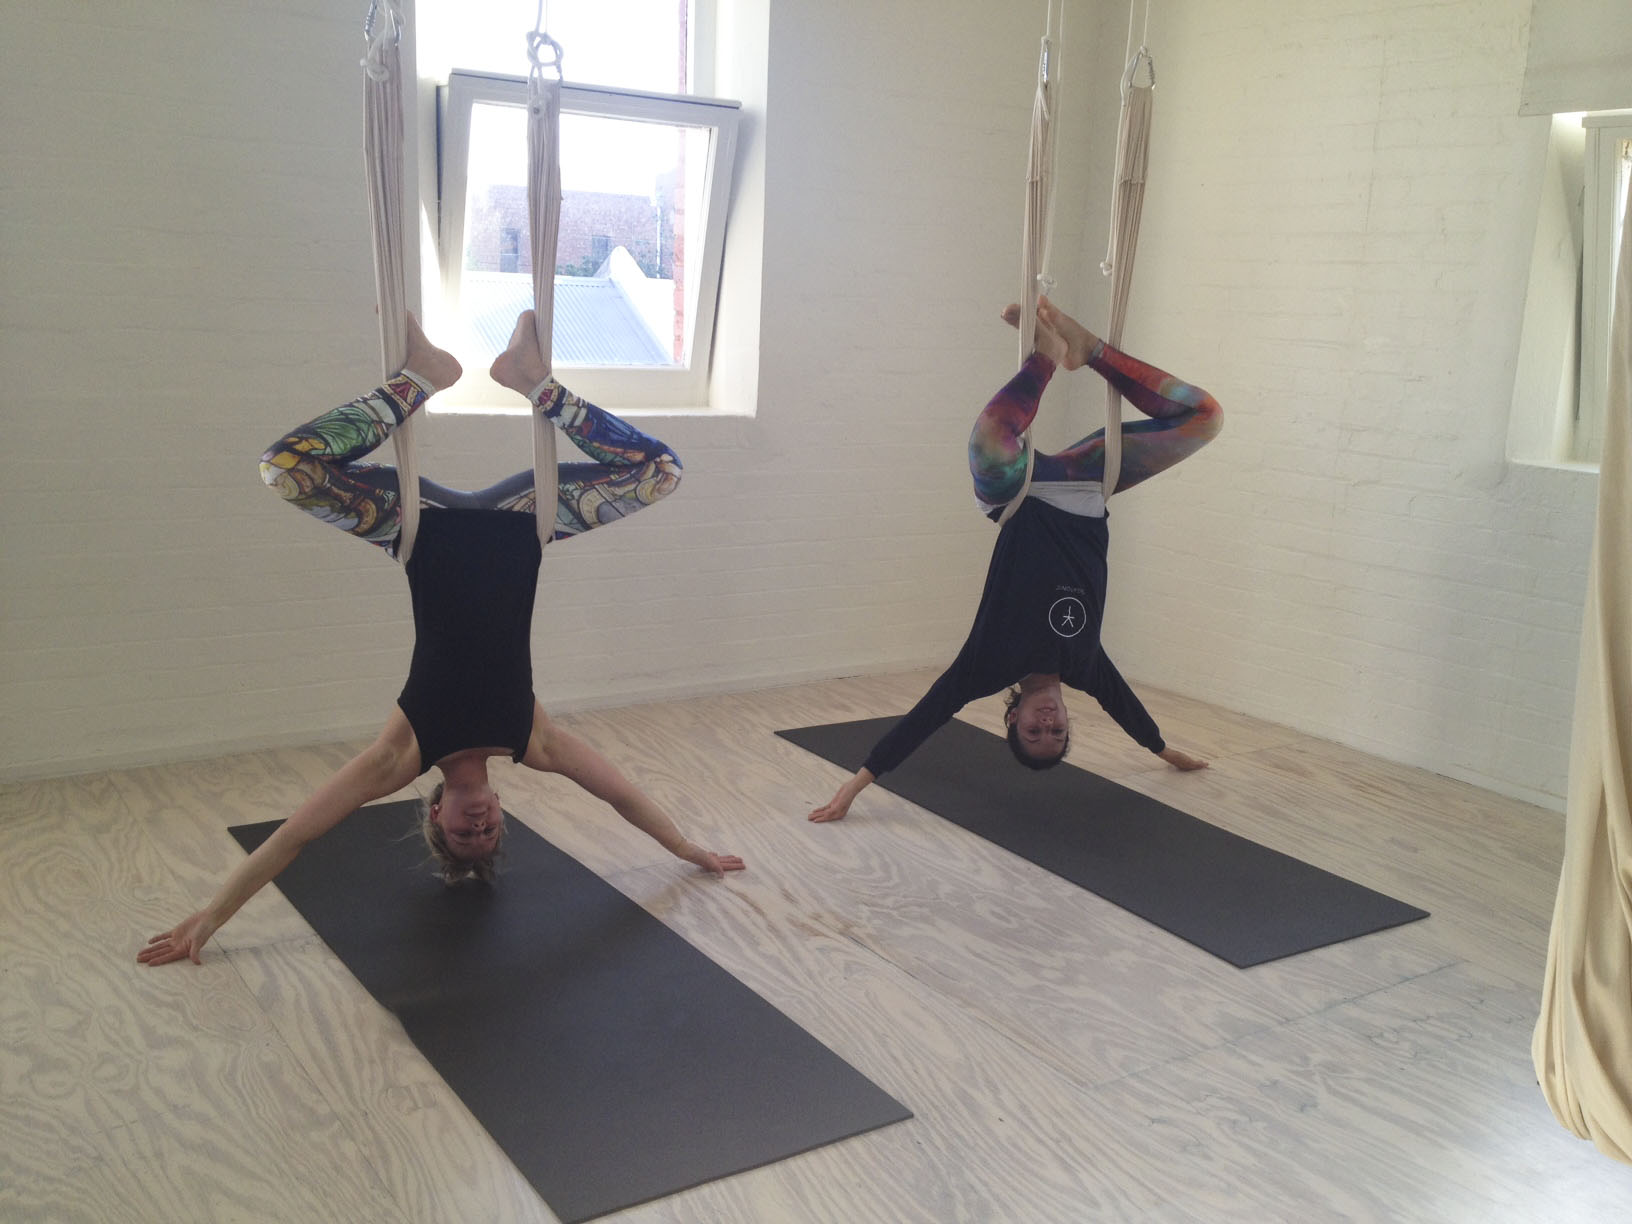 body flow yoga studio melbourne australia2790.jpg